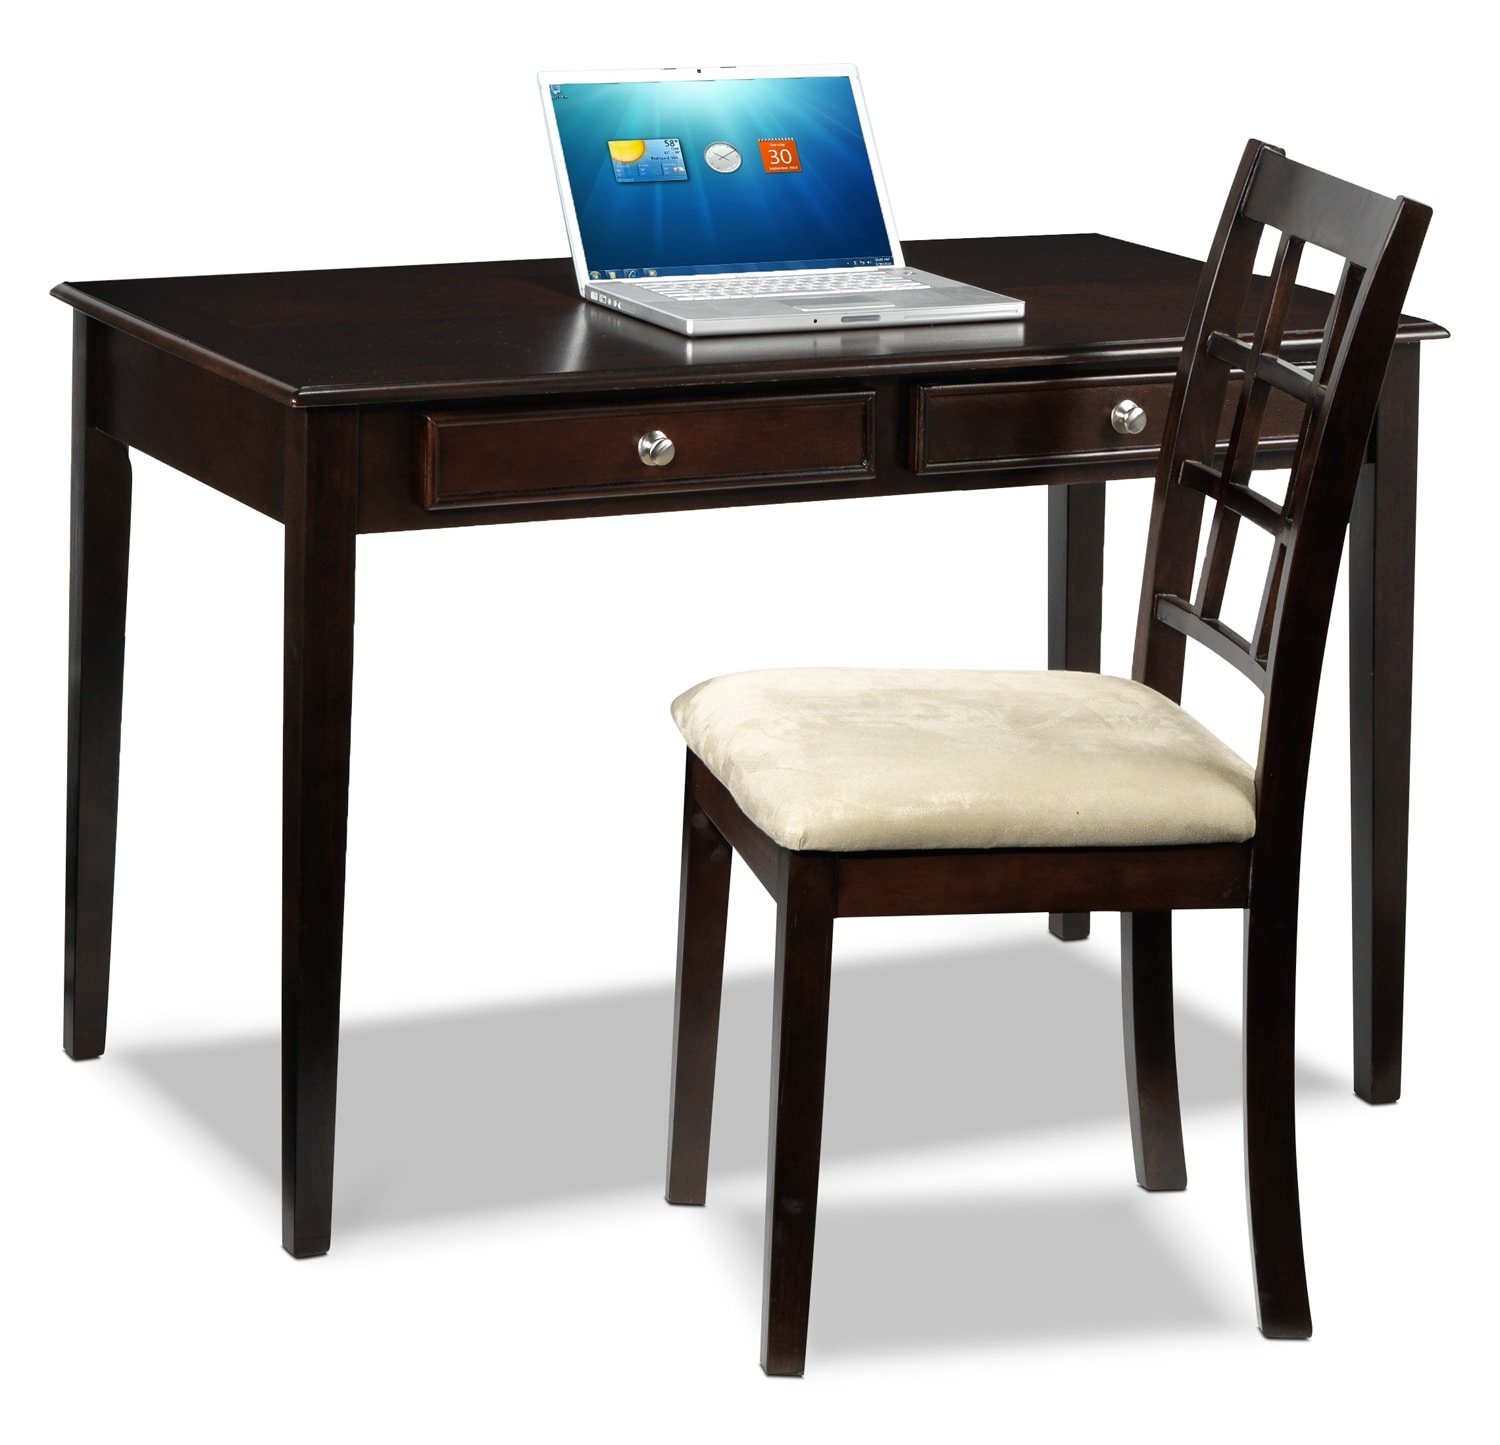 Tyndall Desk and Chair Package - Espresso | Leon's